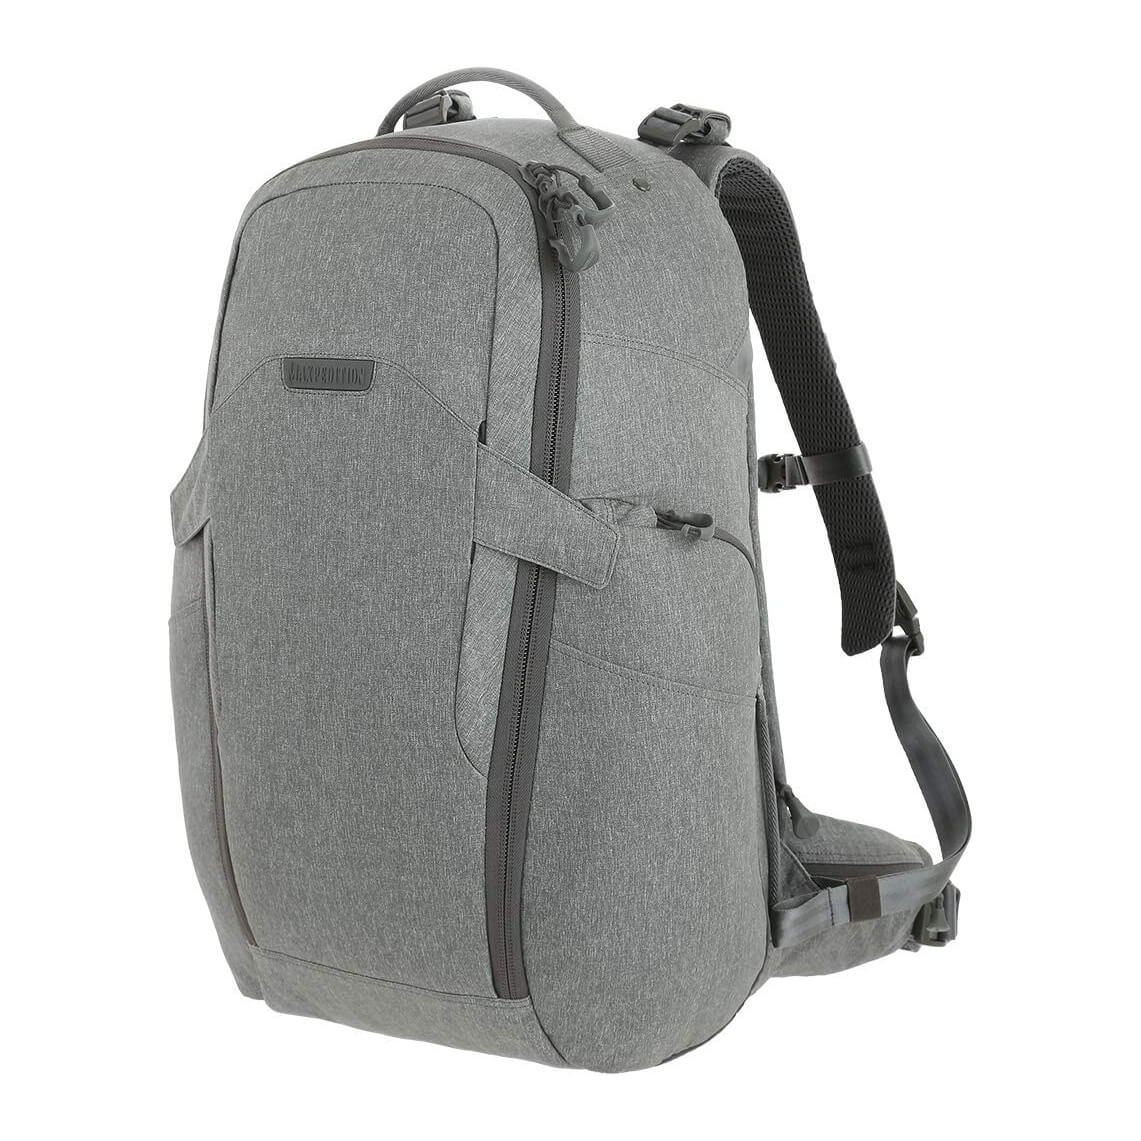 Maxpedition Entity 35 CCW-Enabled Internal Frame Backpack